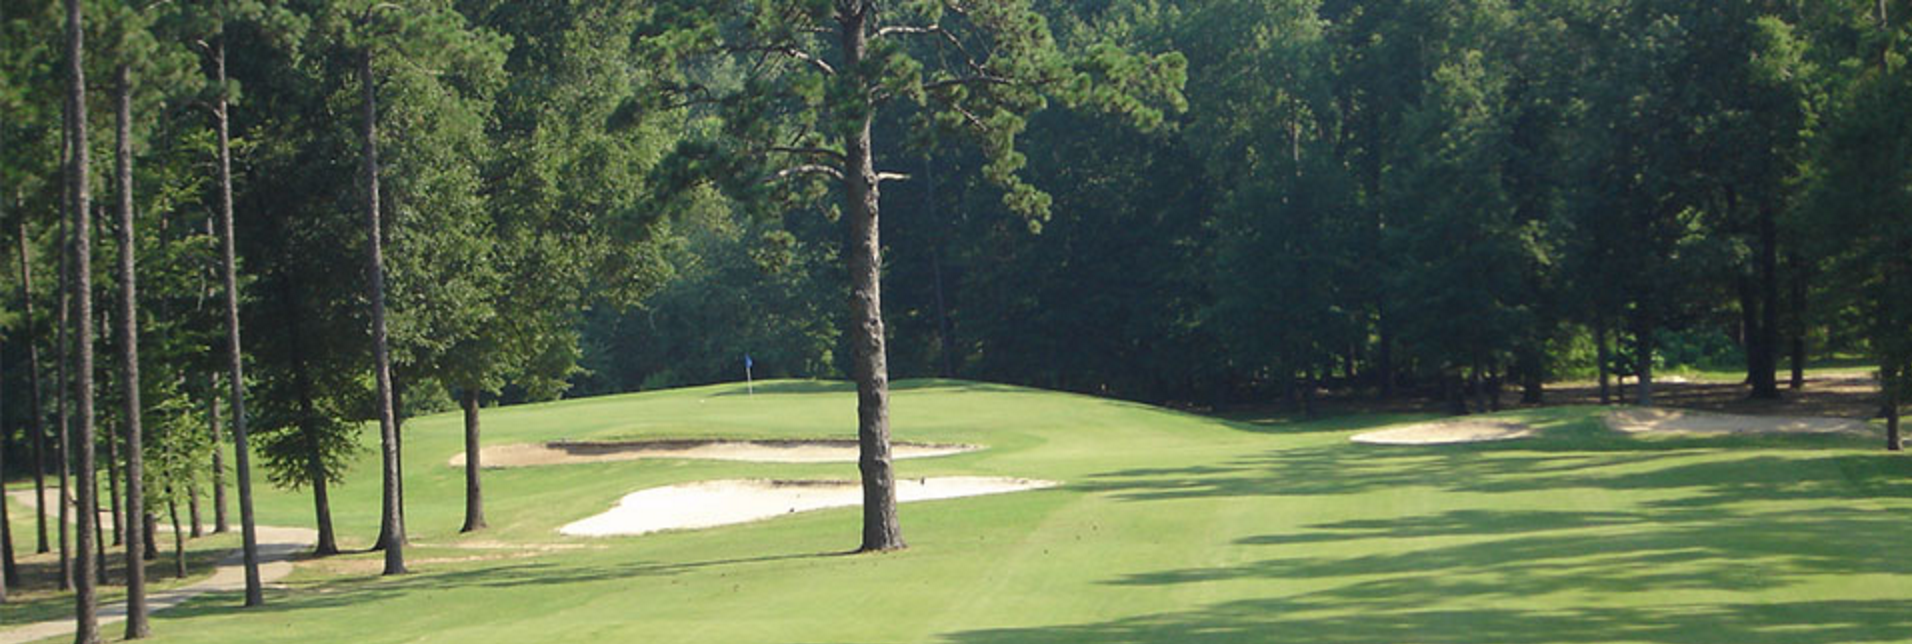 golf Country Club of Arkansas